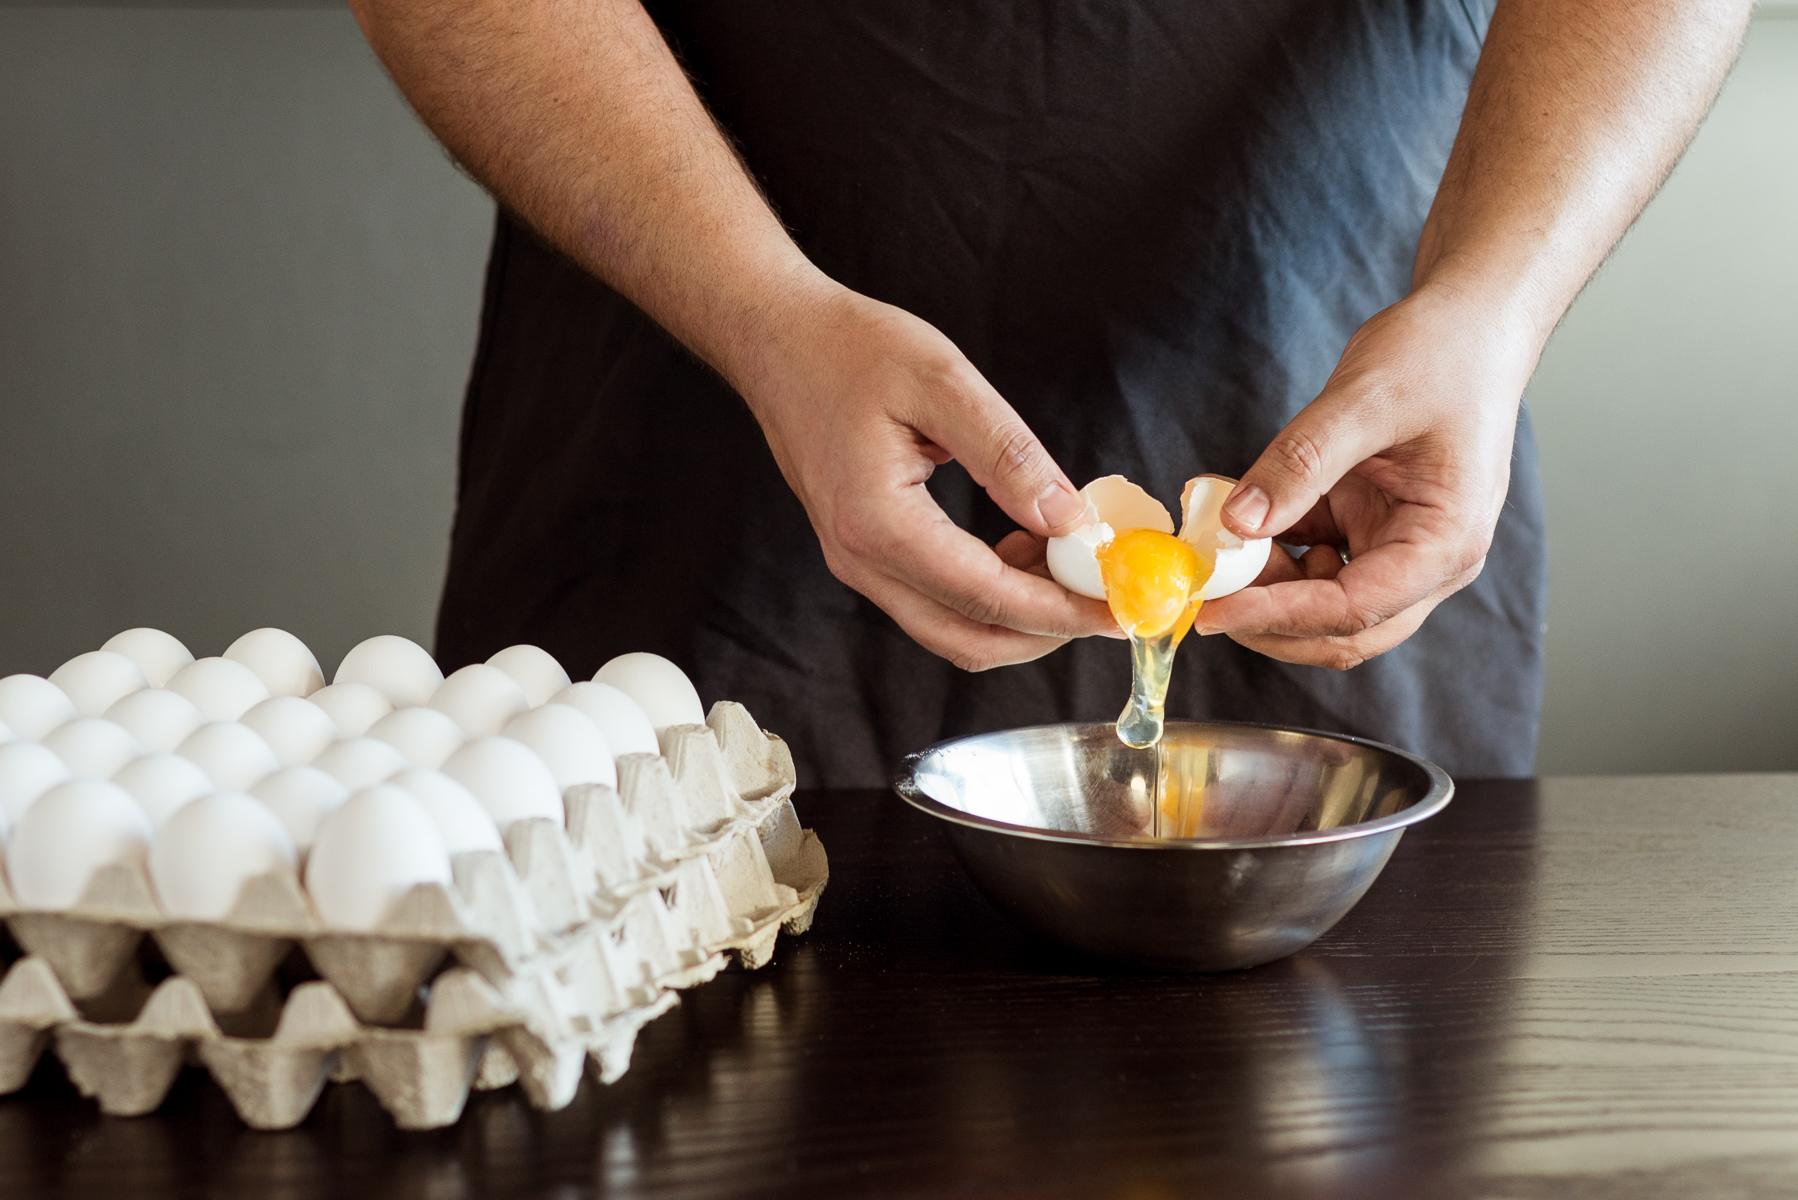 Chef cracks eggs at Mici Handcrafted Italian in Denver, CO.